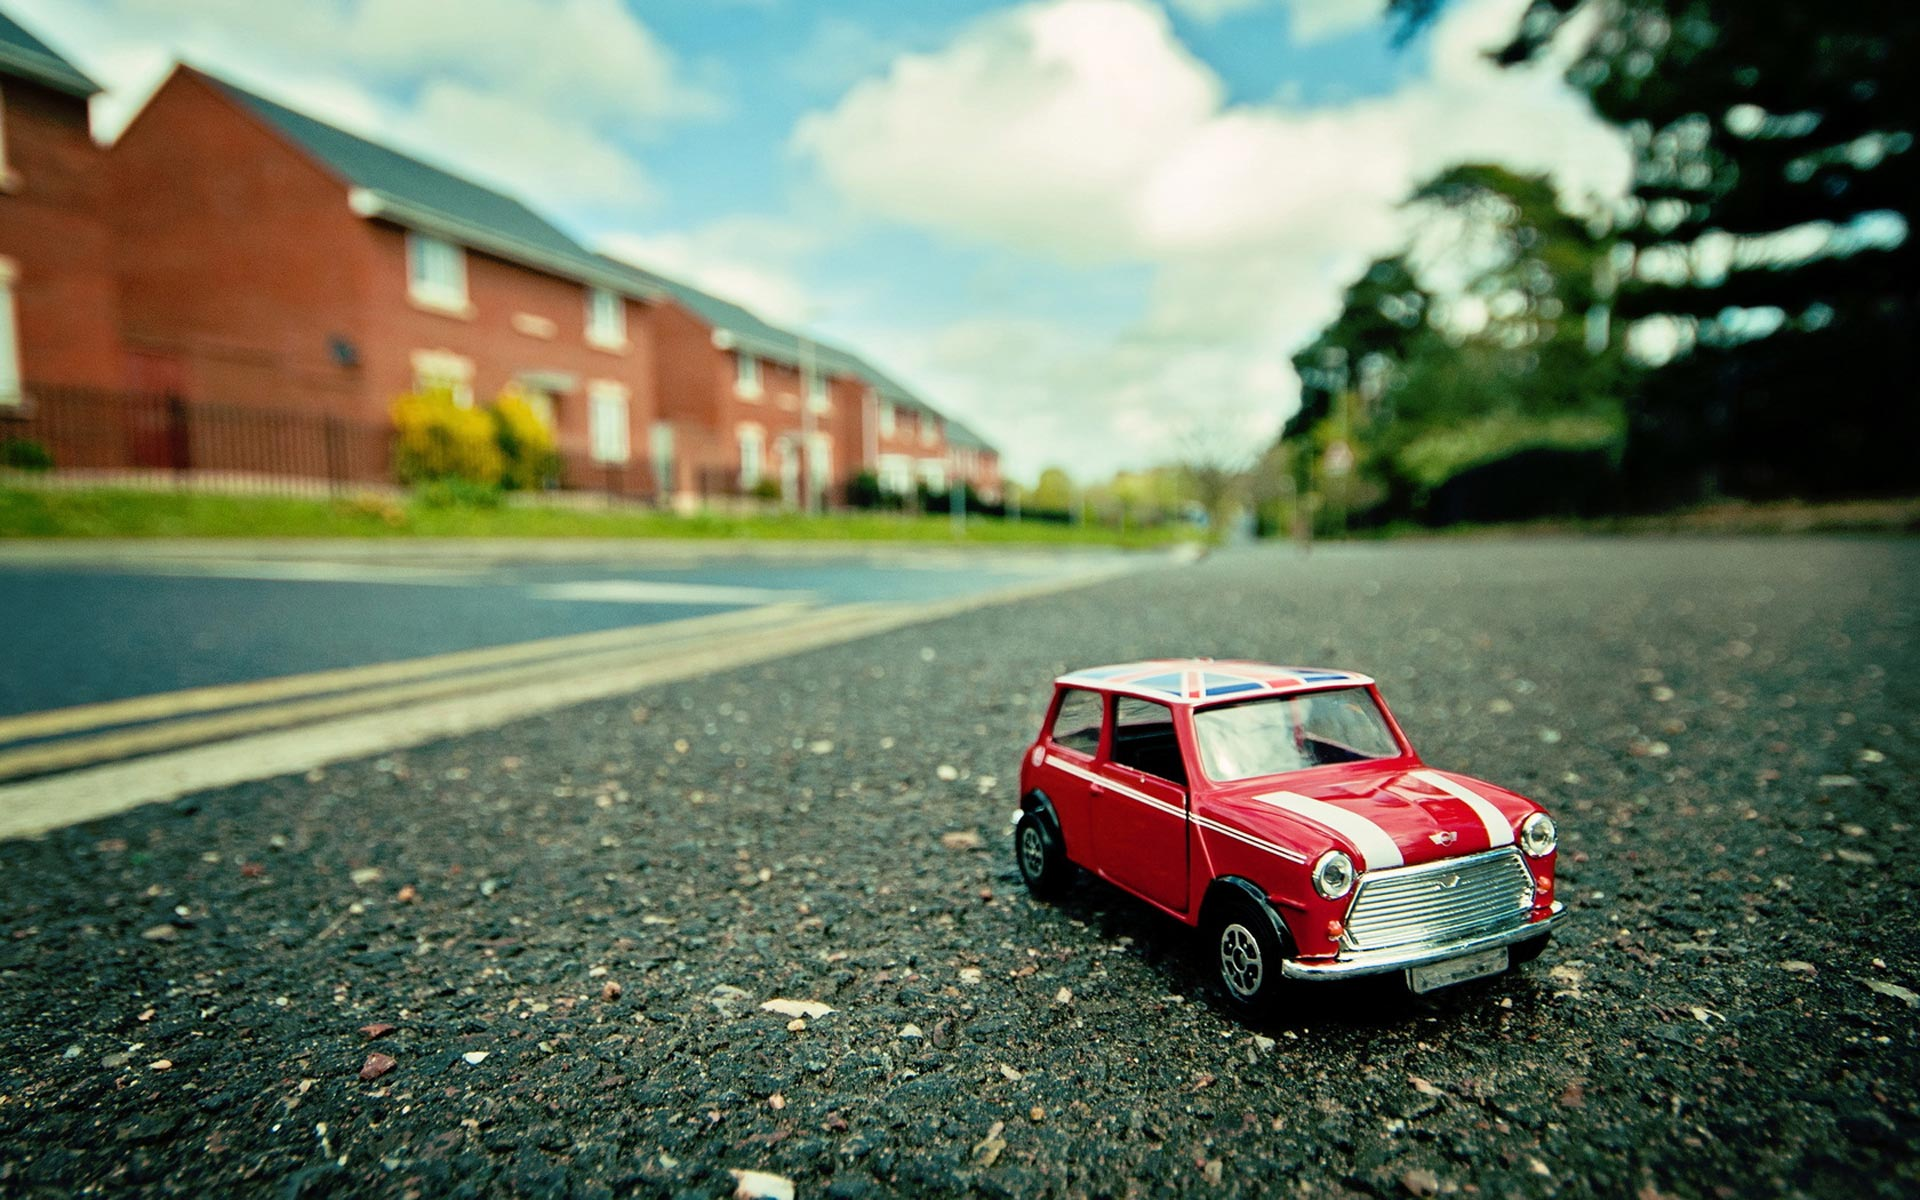 12 Outstanding HD Toy Car Wallpapers